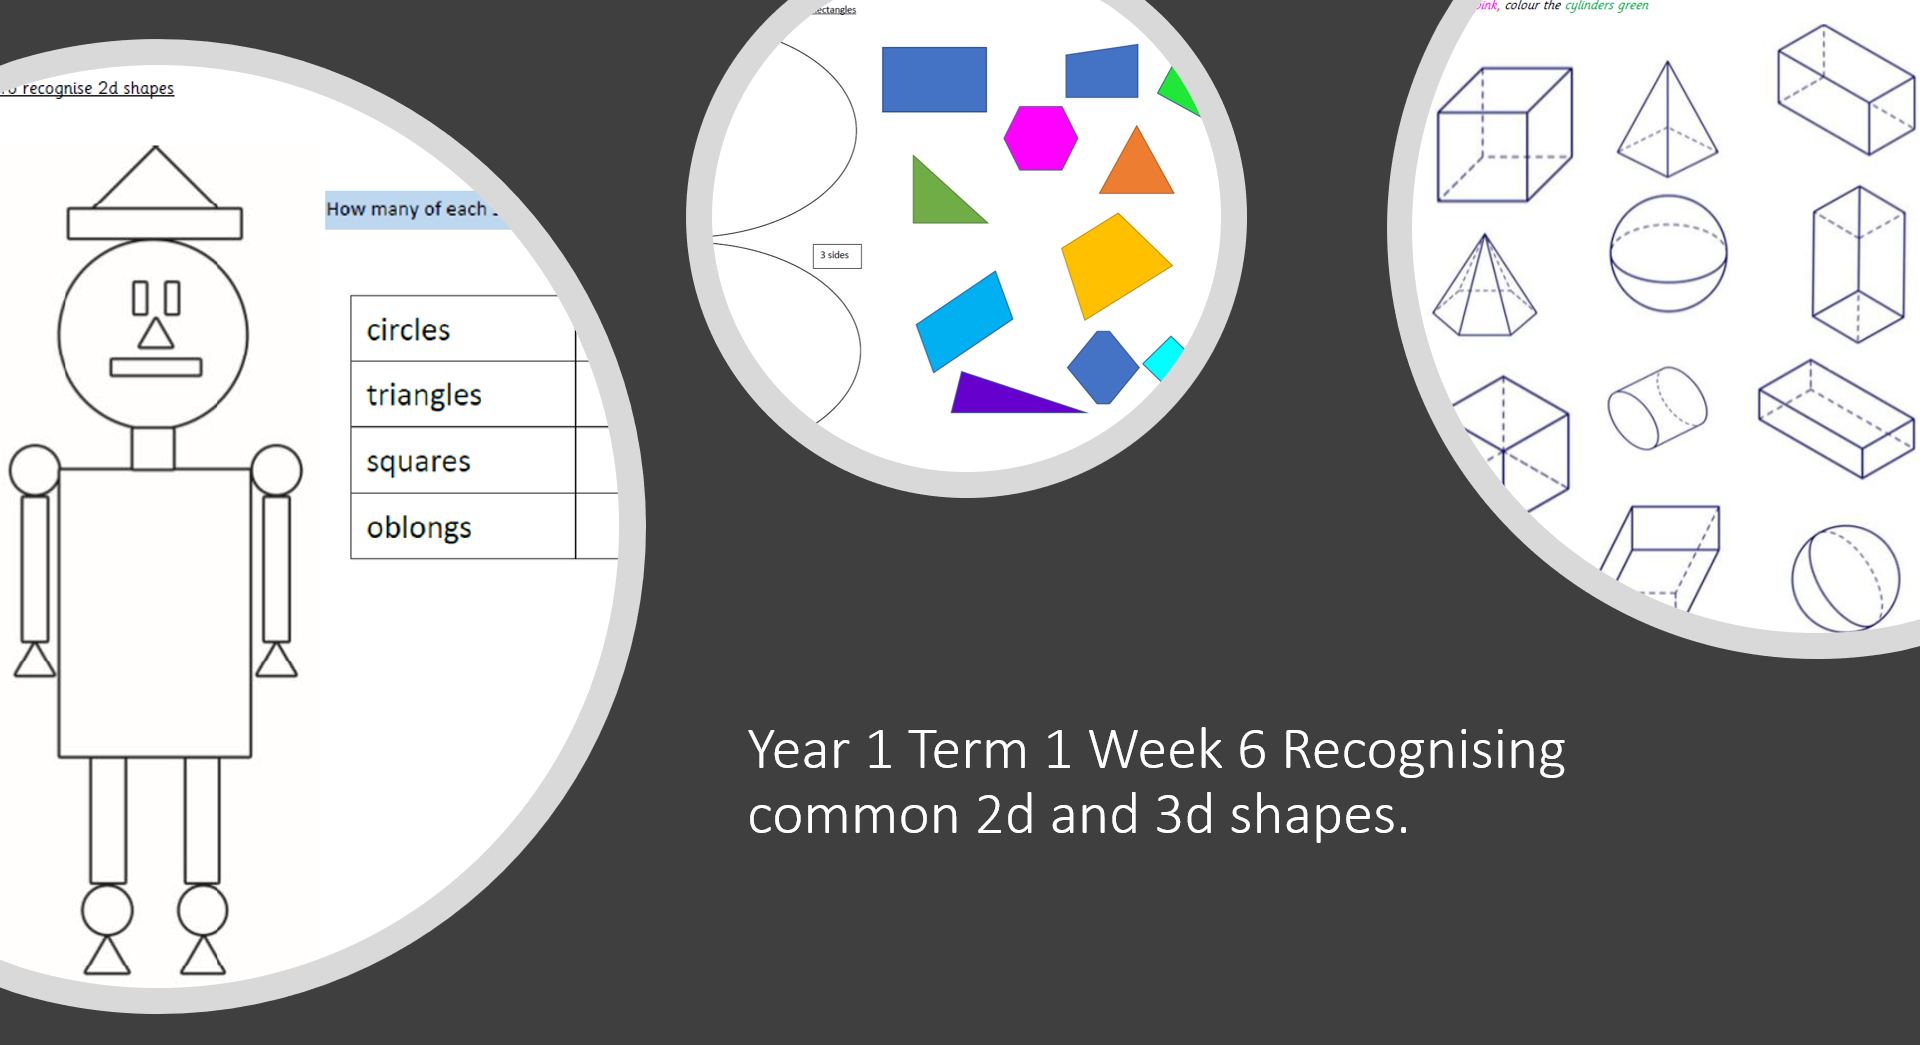 Year 1 Term 1 Week 6 2d and 3d shapes